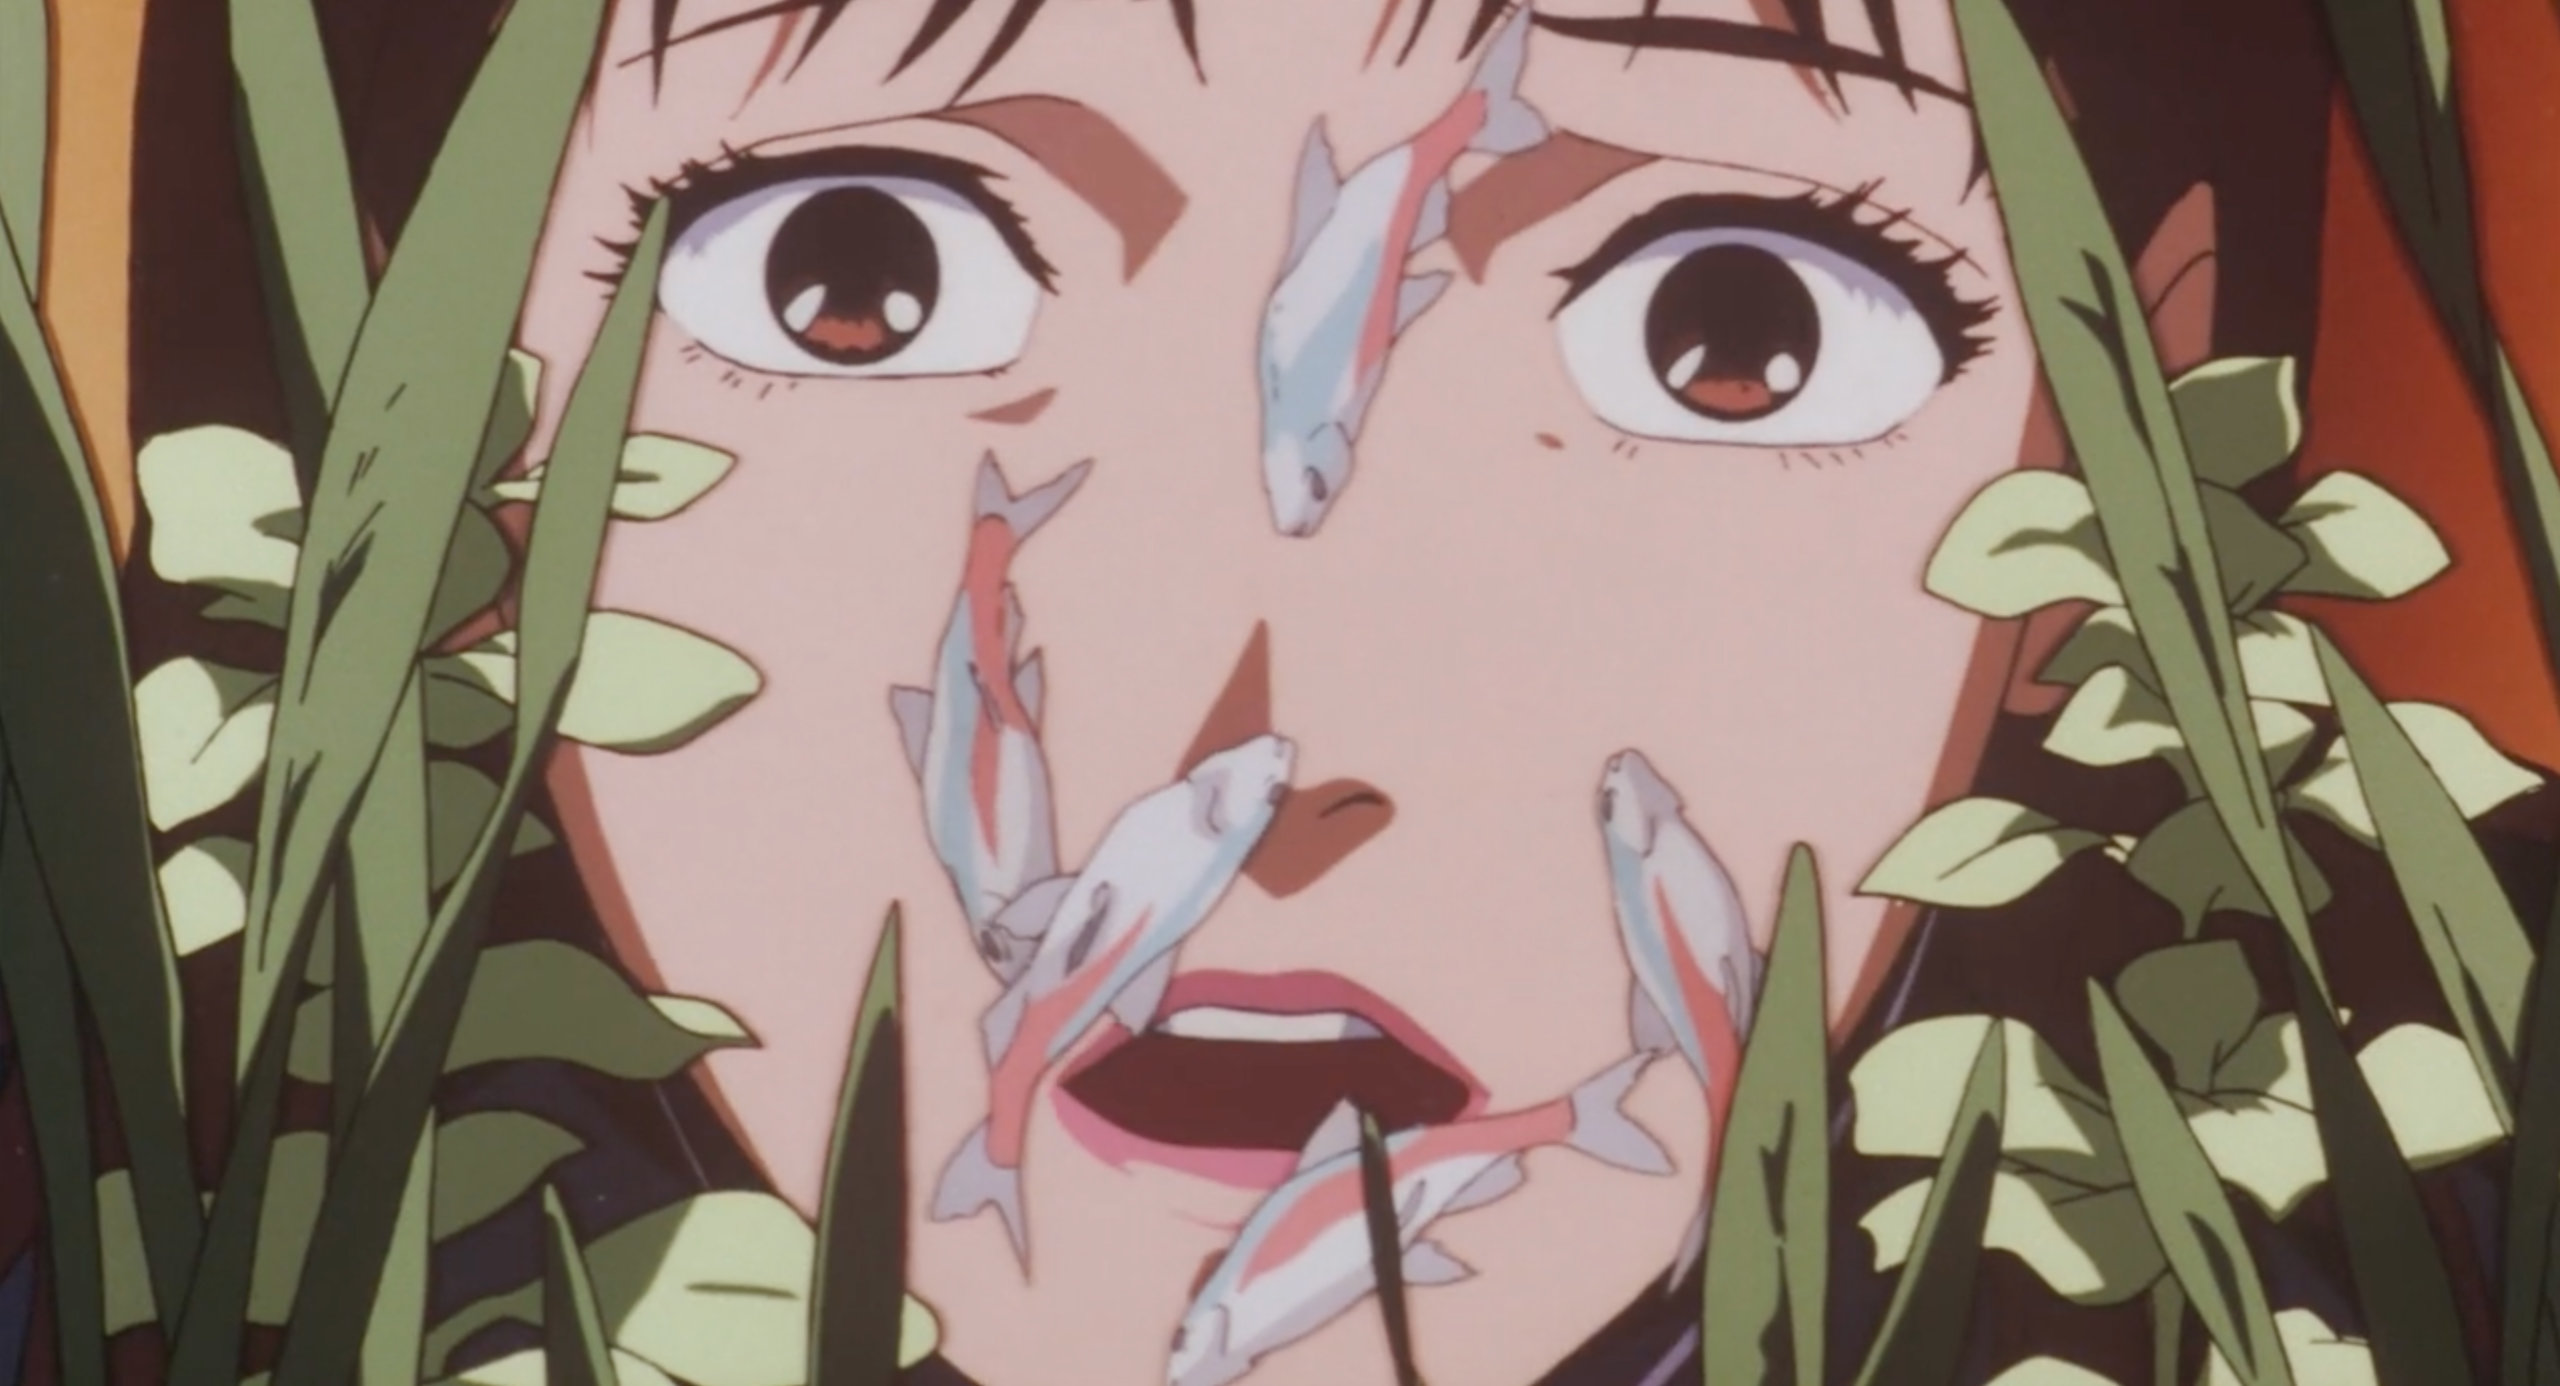 Mima cries about her dead fish in Perfect Blue